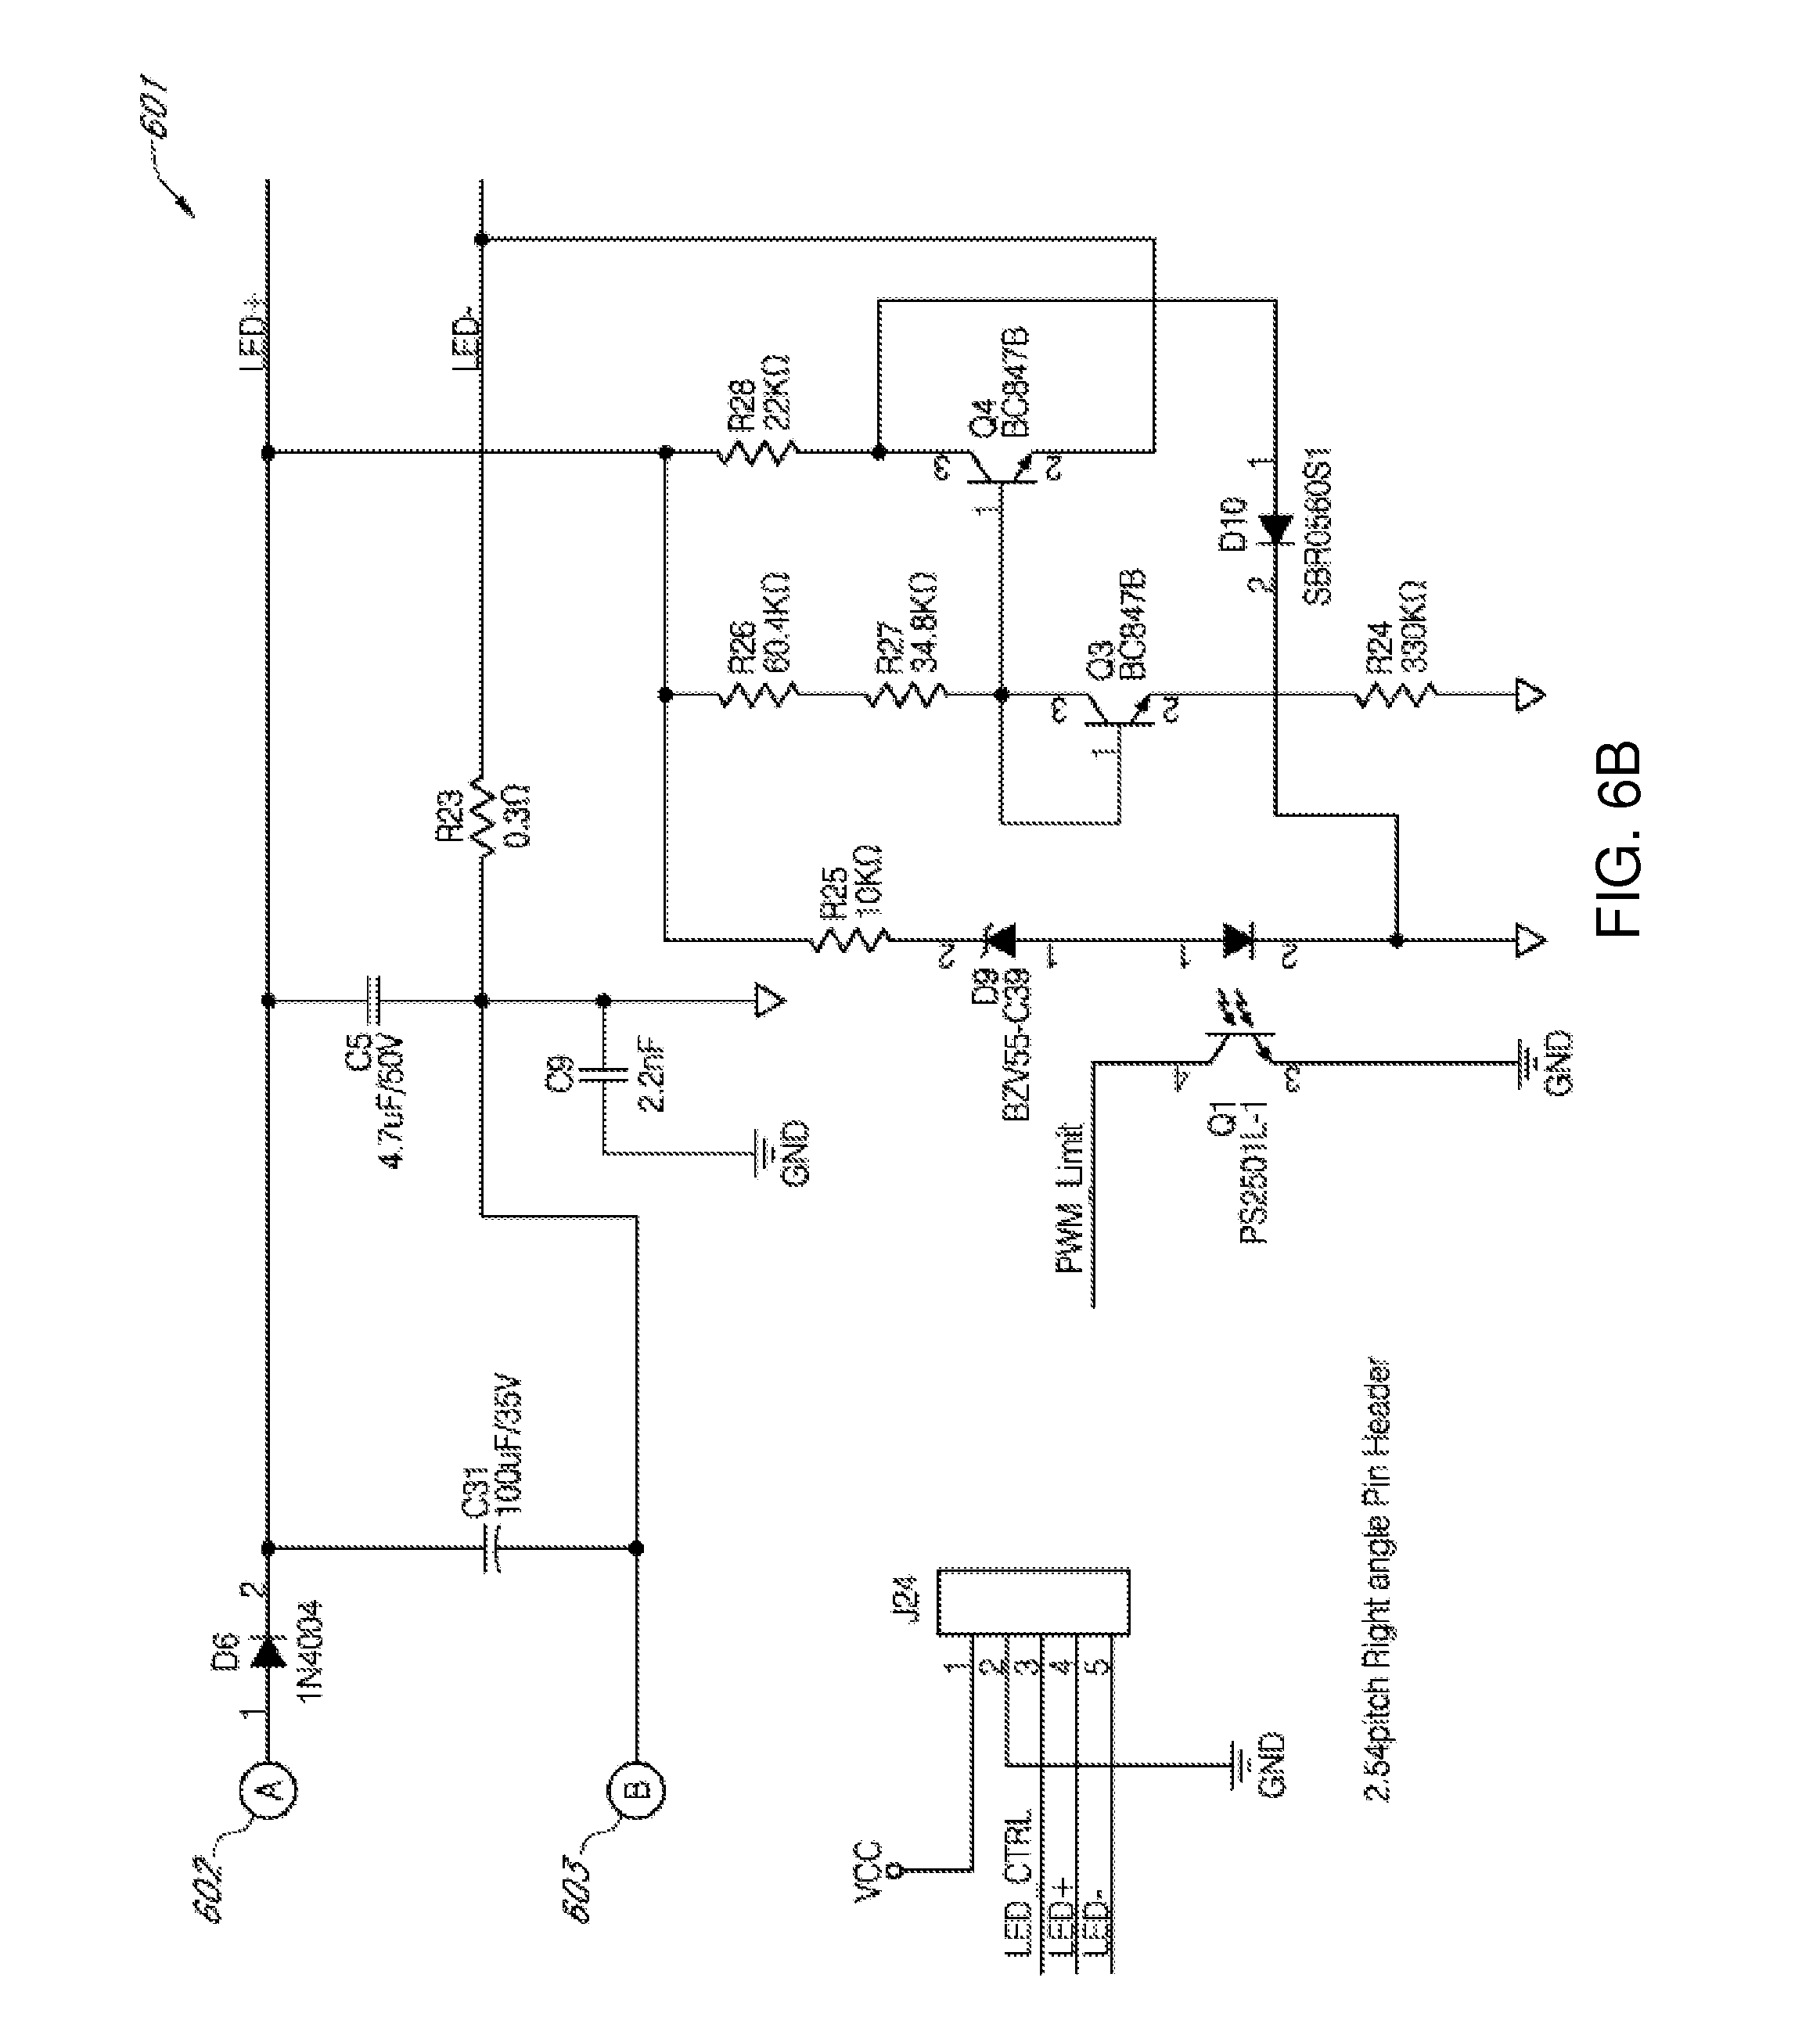 Patent Us20130162166 Modular Networked Light Bulb Google Patents Central Air Conditioning Circuit Board Pictures Drawing